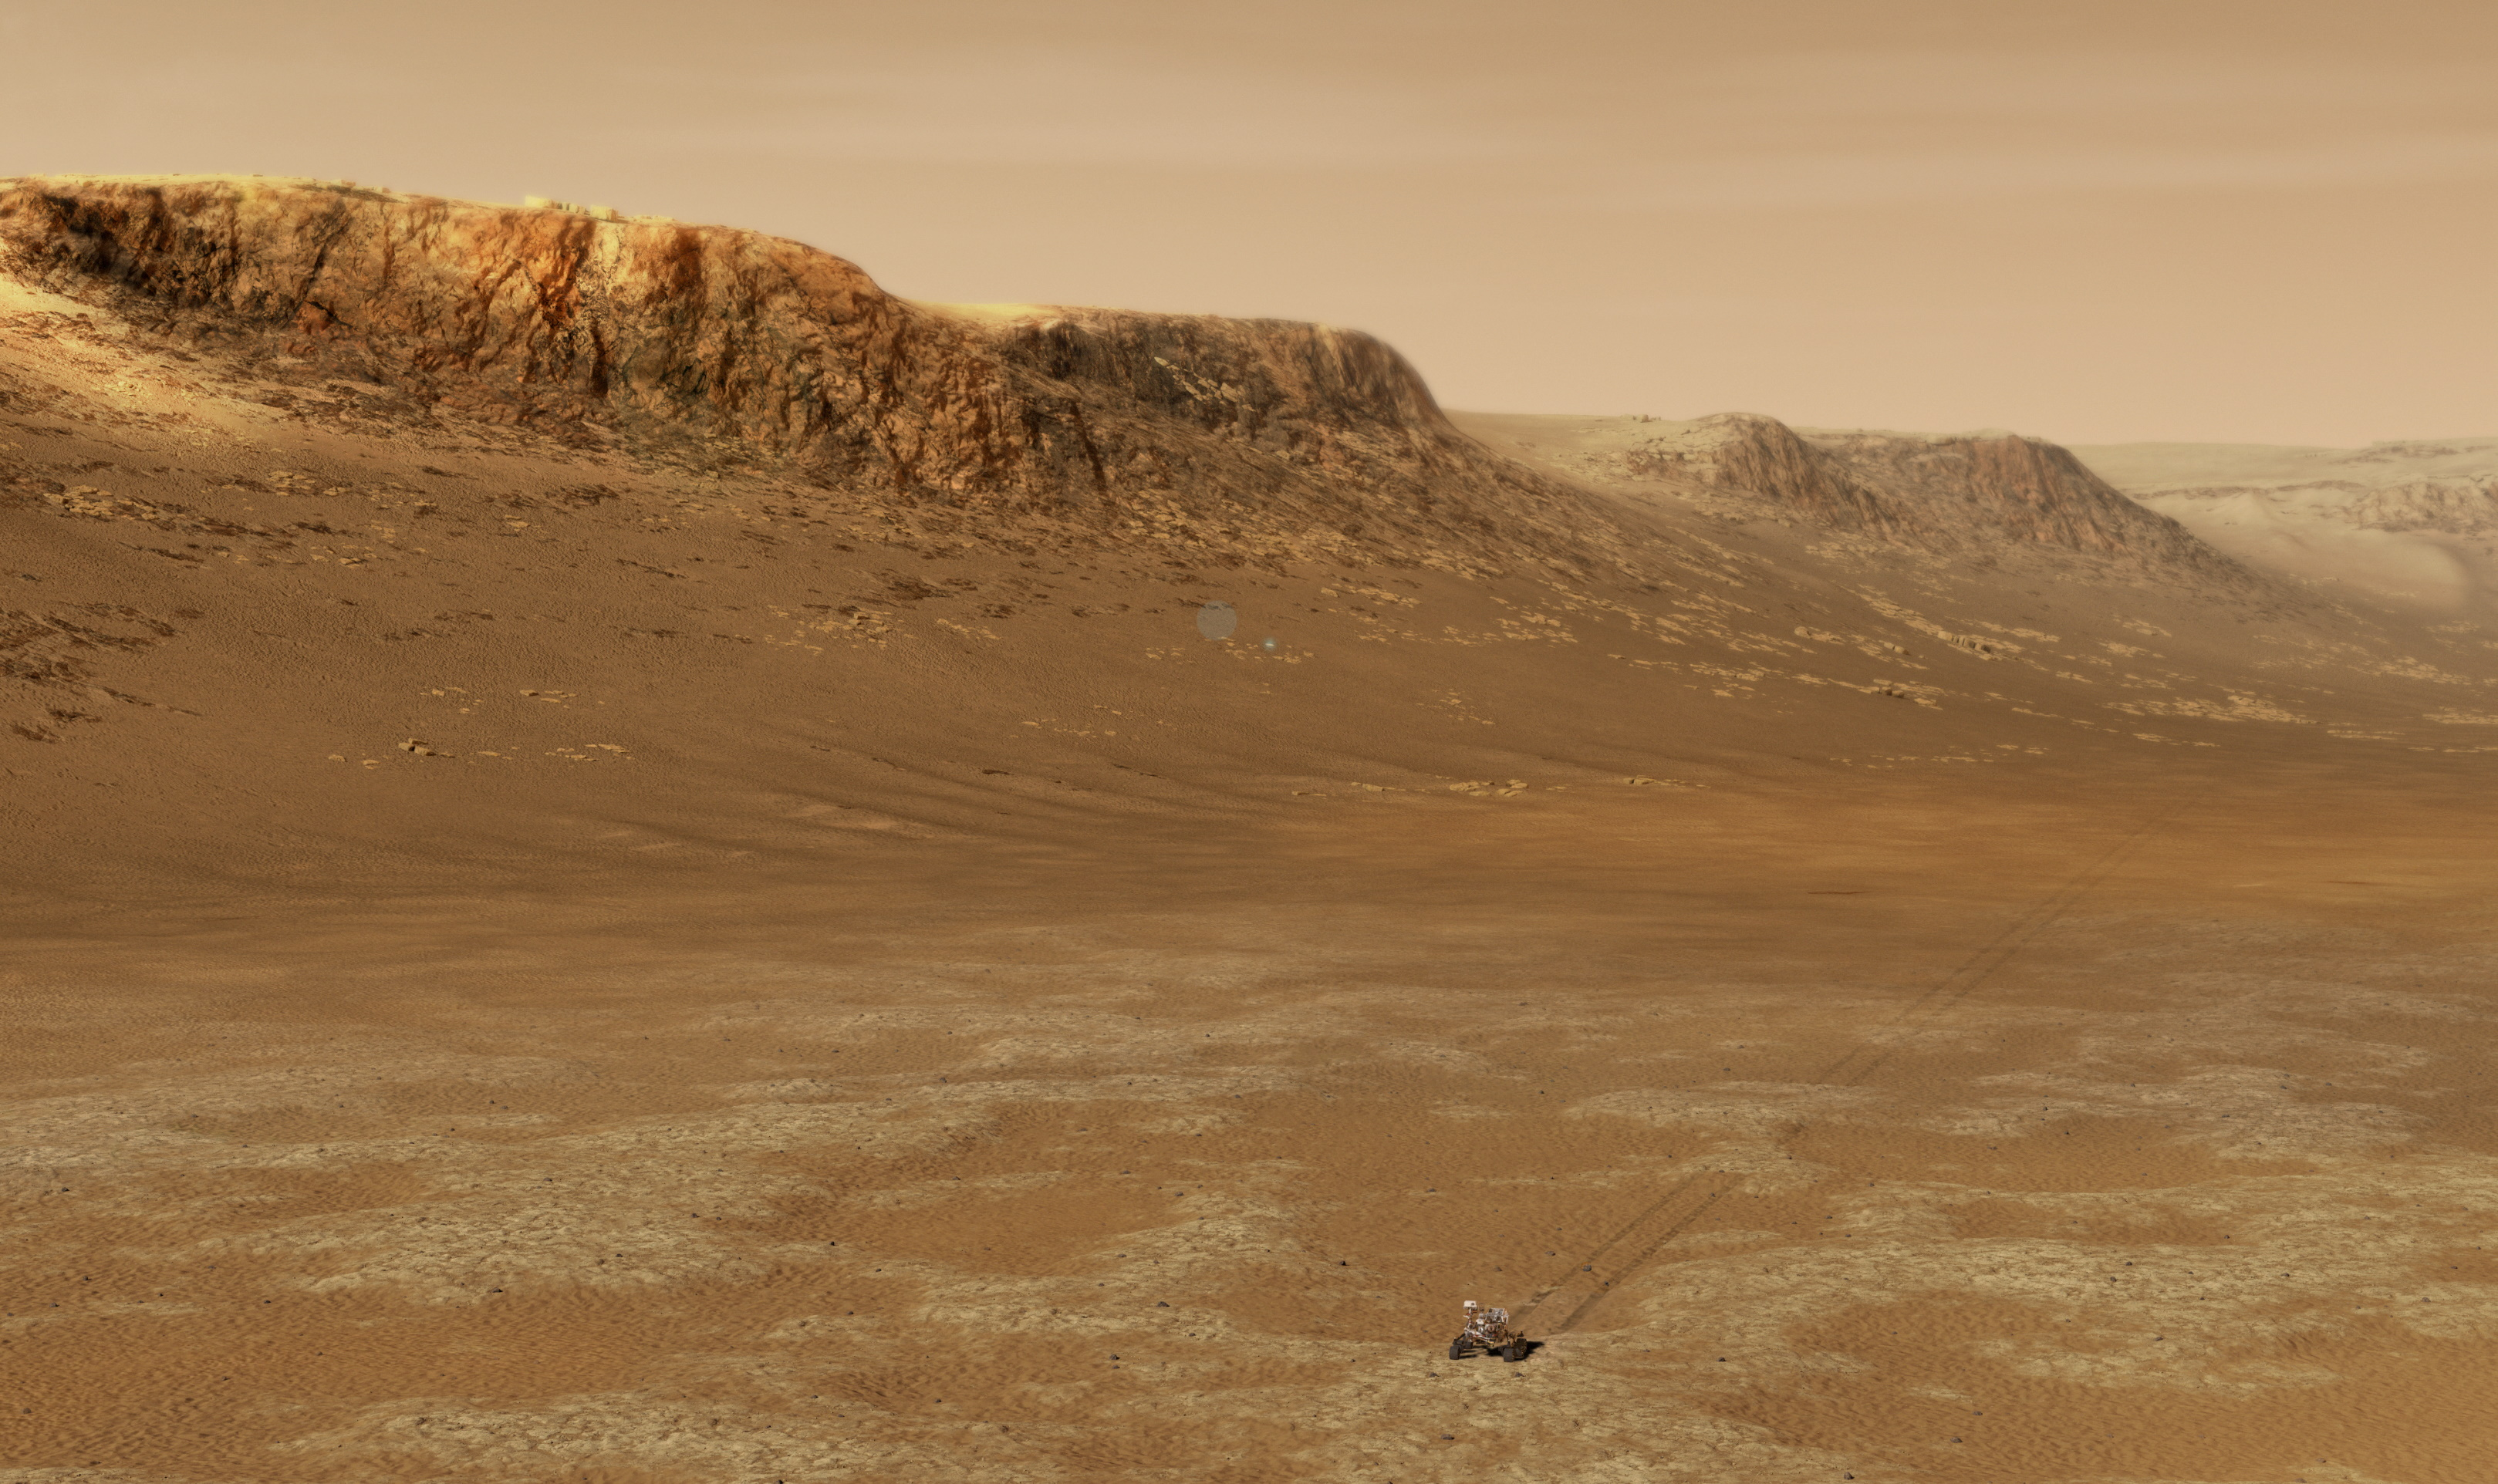 Illustration of Perseverance very small against a Martian landscape.